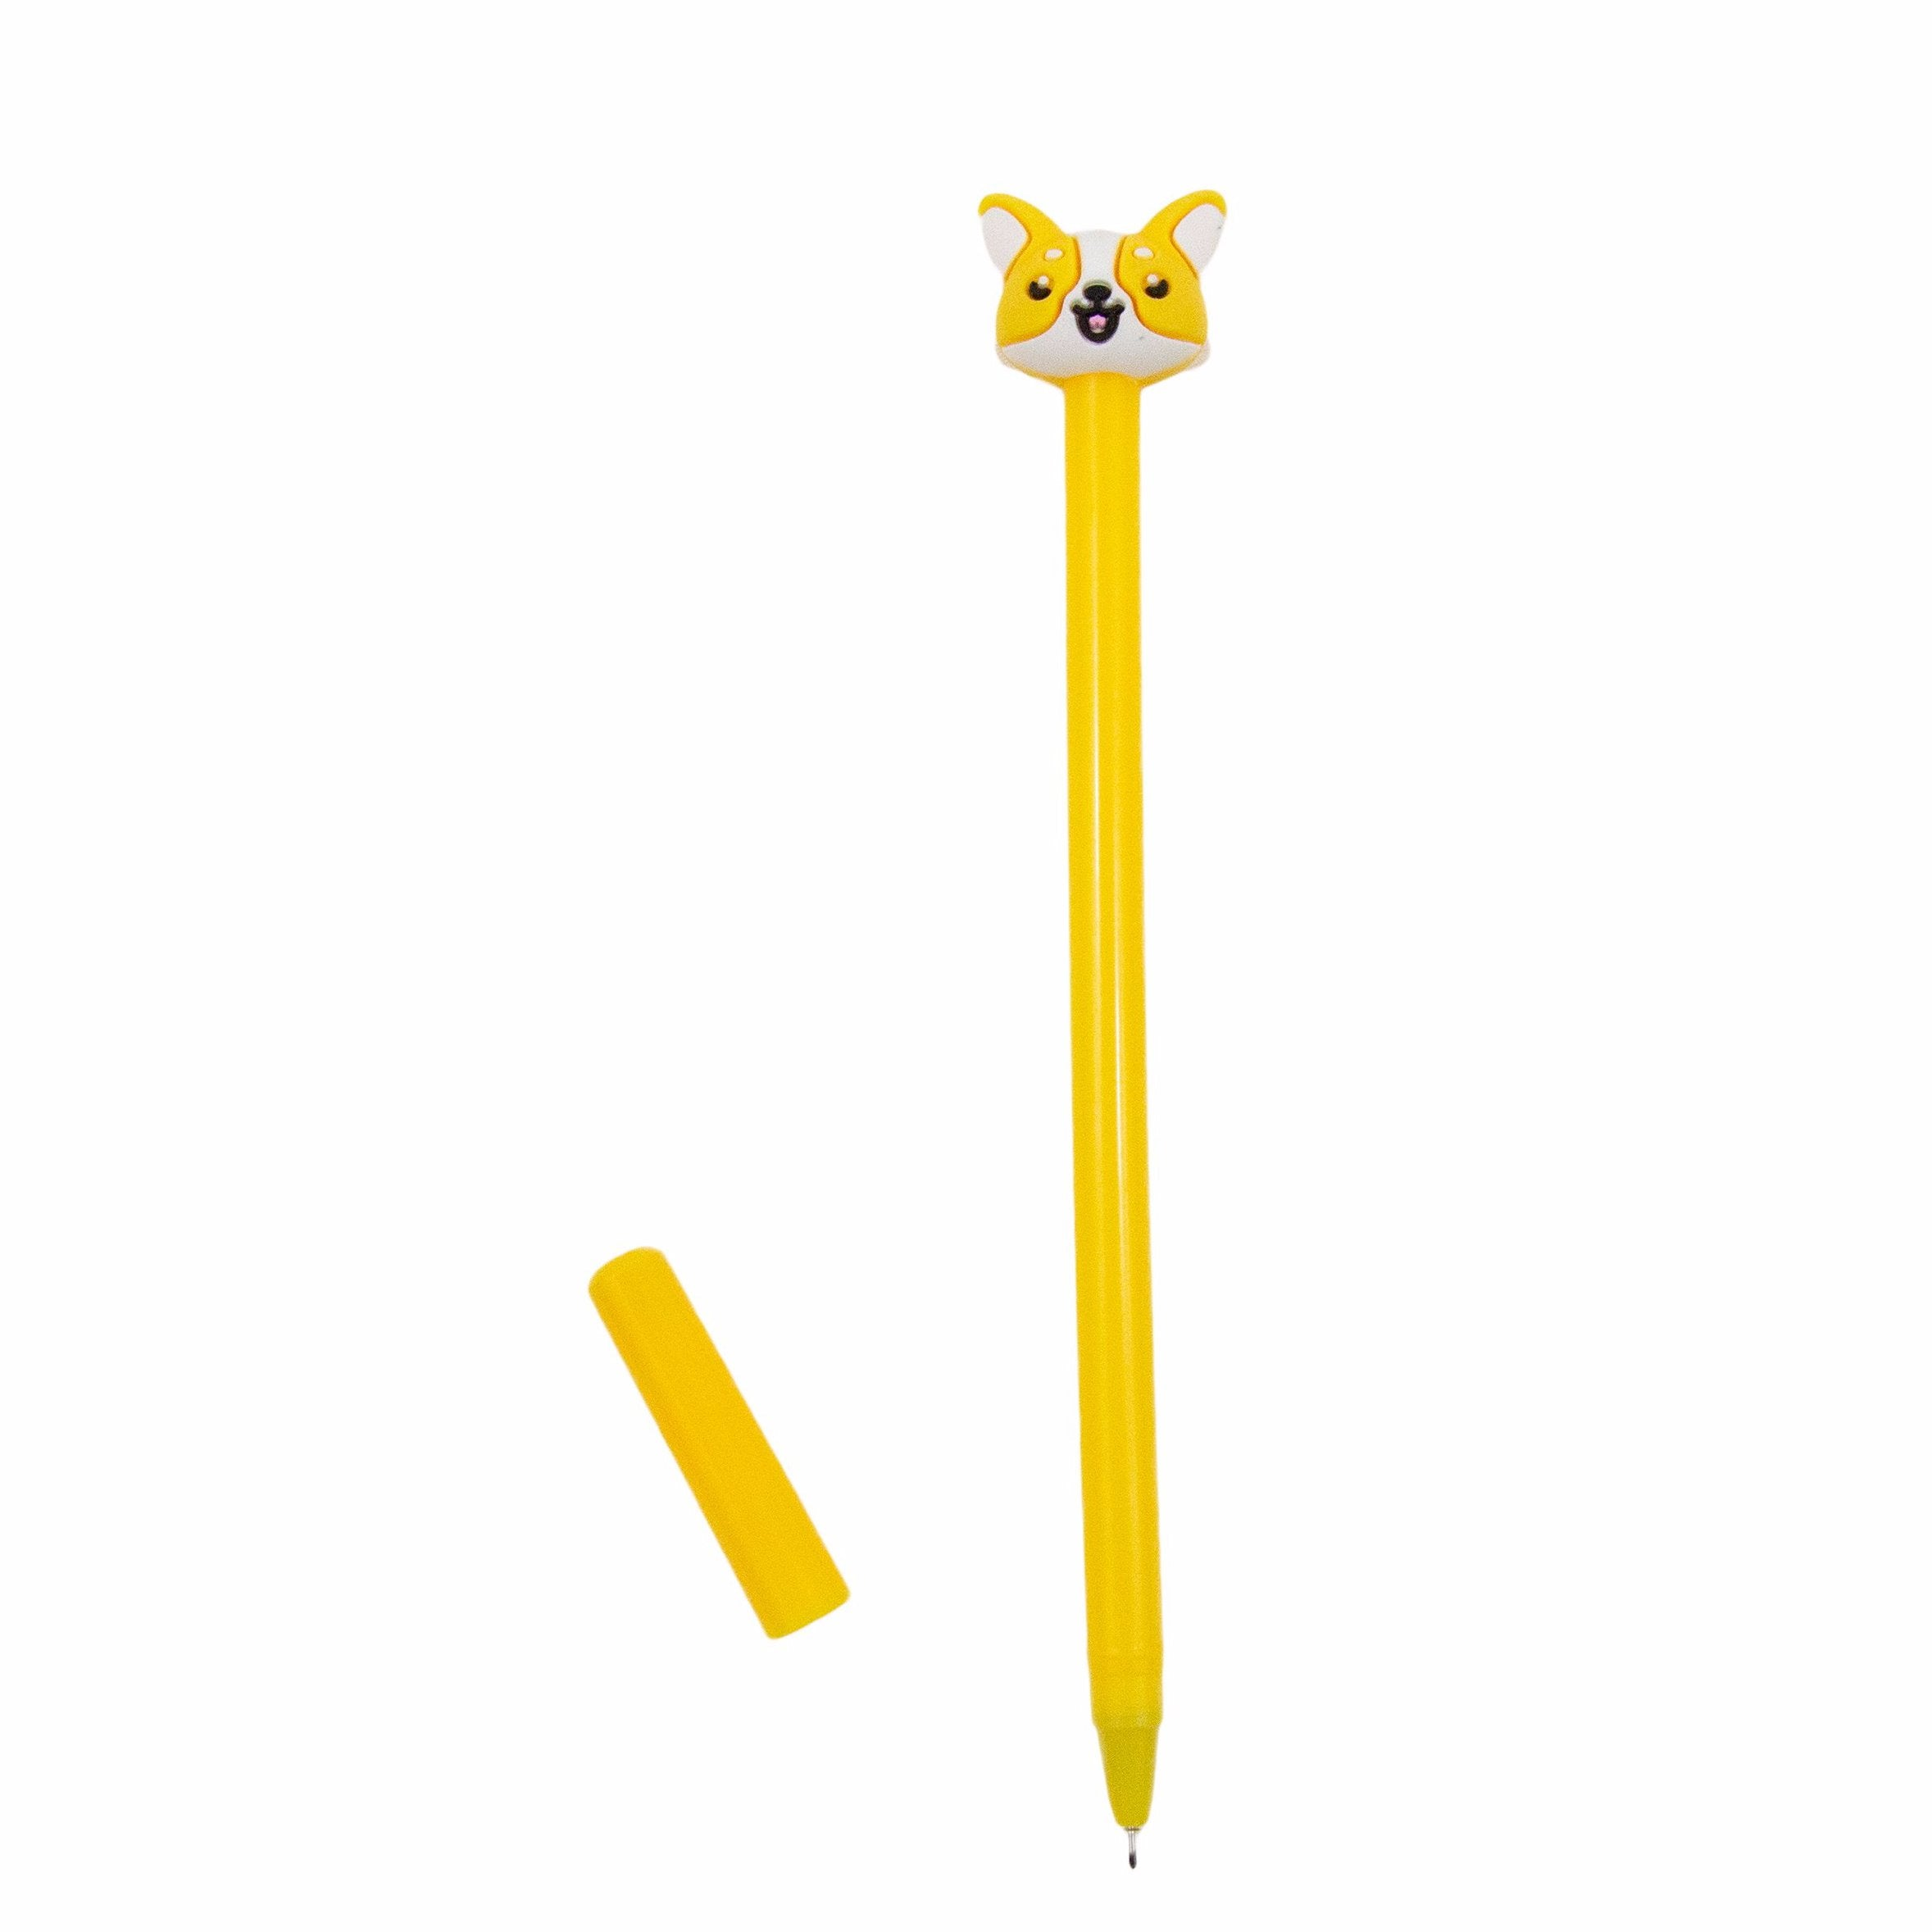 Corgi Pen Set (Set of 2)